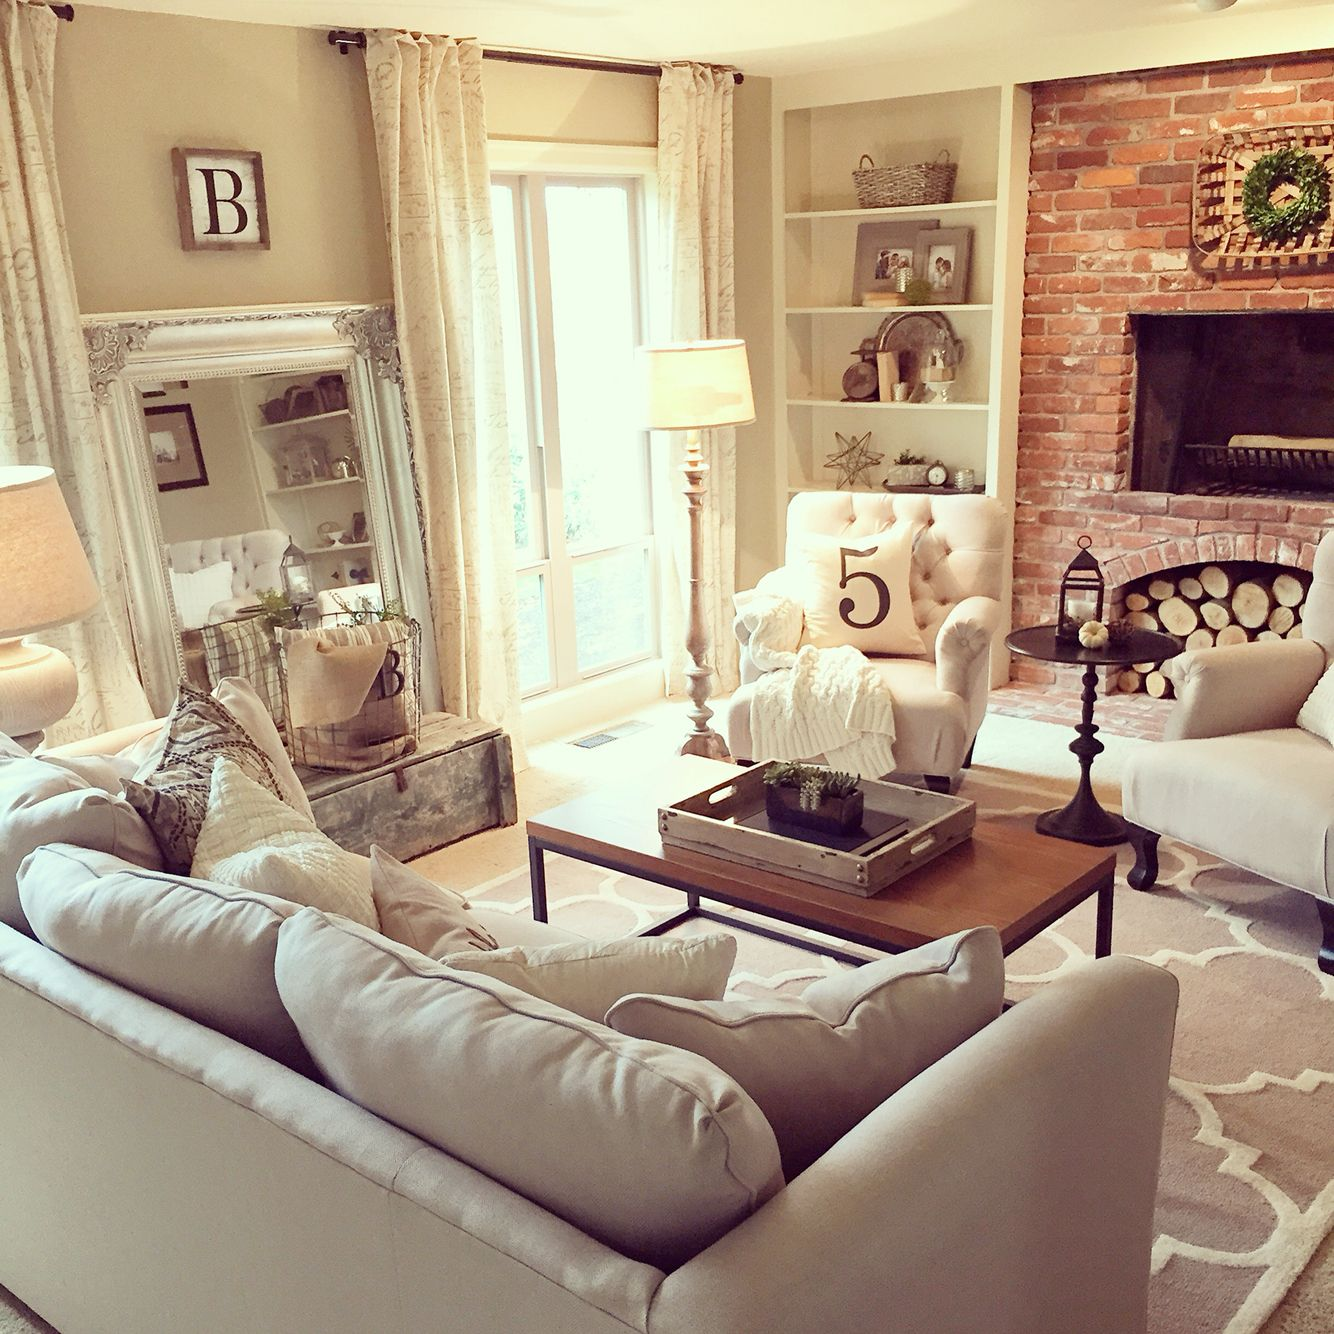 Living room refresh completed for a client love this neutral color